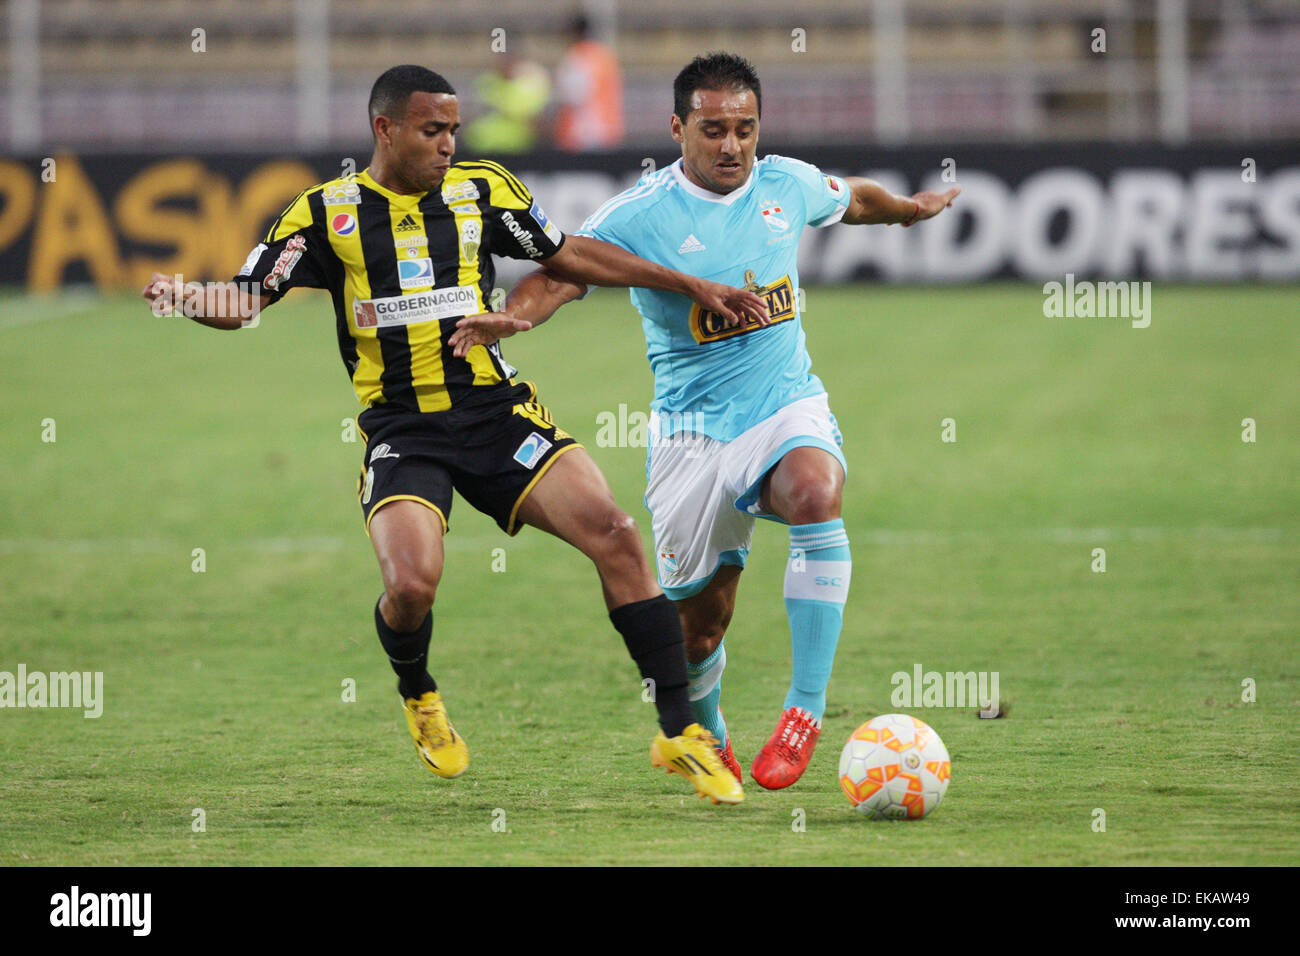 Tachira. 9th Apr, 2015. Deportivo Tachira's Yohandry Orozco (L) vies for the ball with Sporting Cristal's - Stock Image